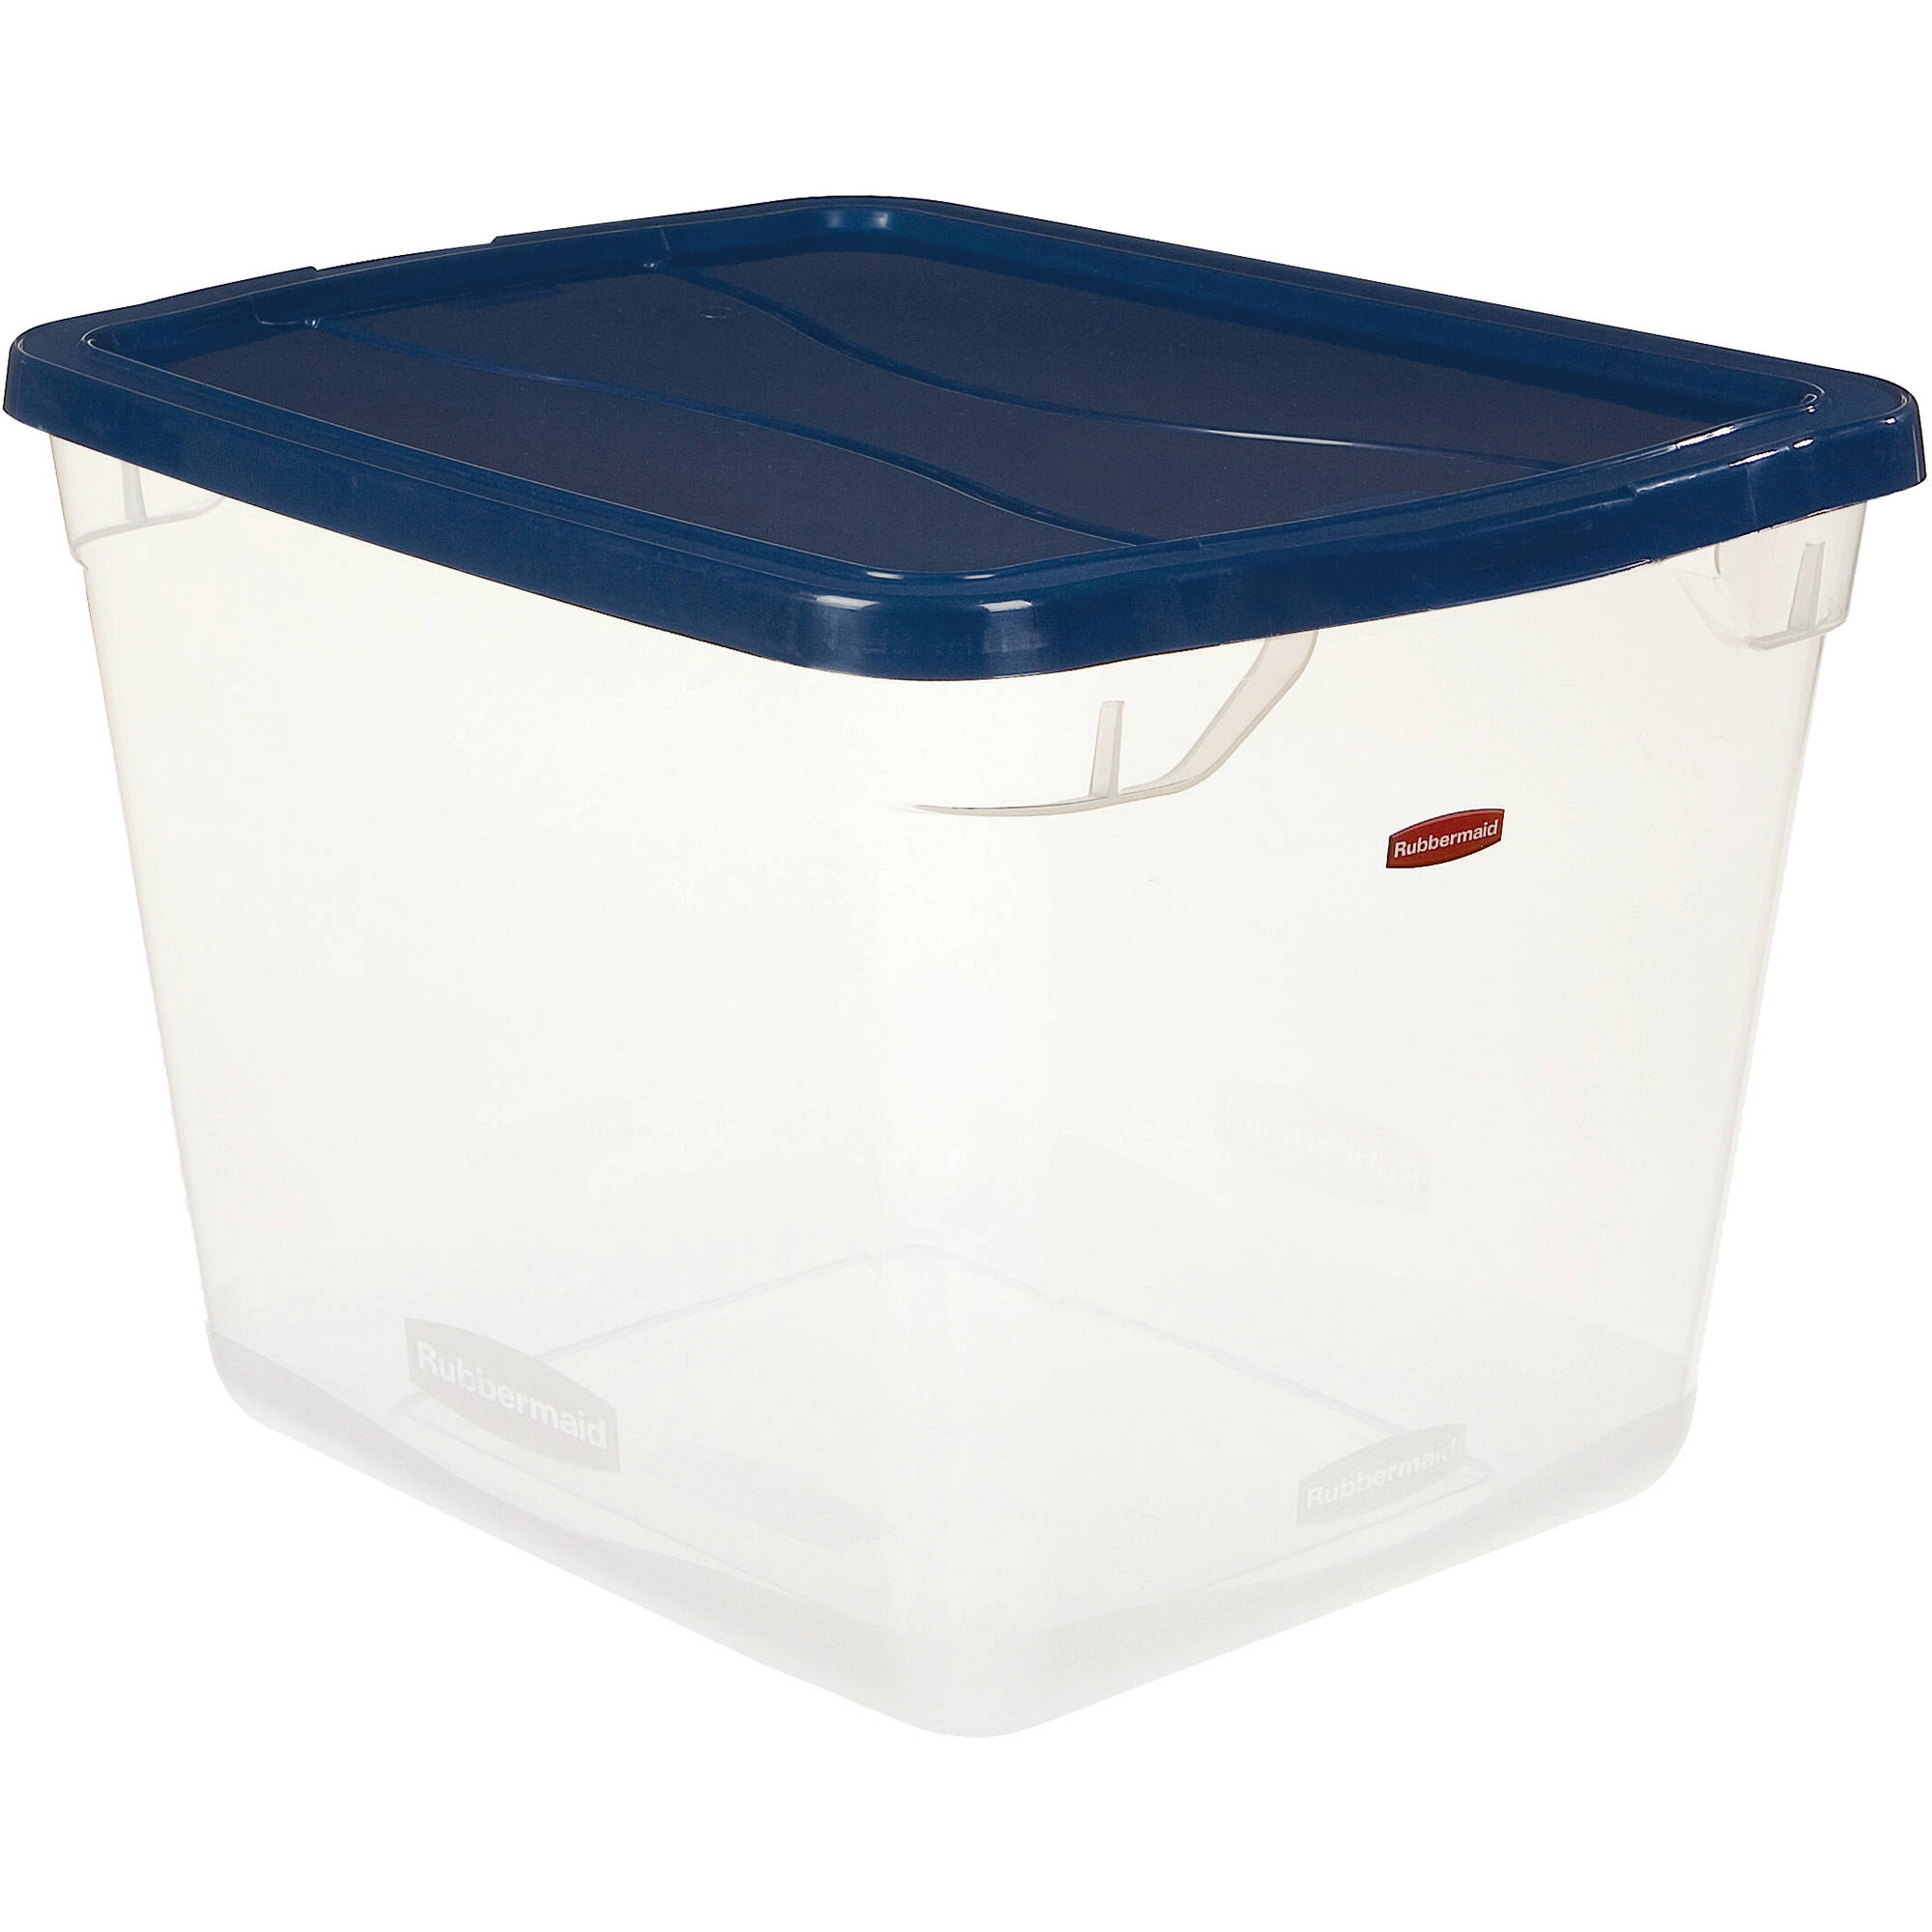 Rubbermaid Clever Store Non-Latching Storage Bin (Set of 8) by Rubbermaid